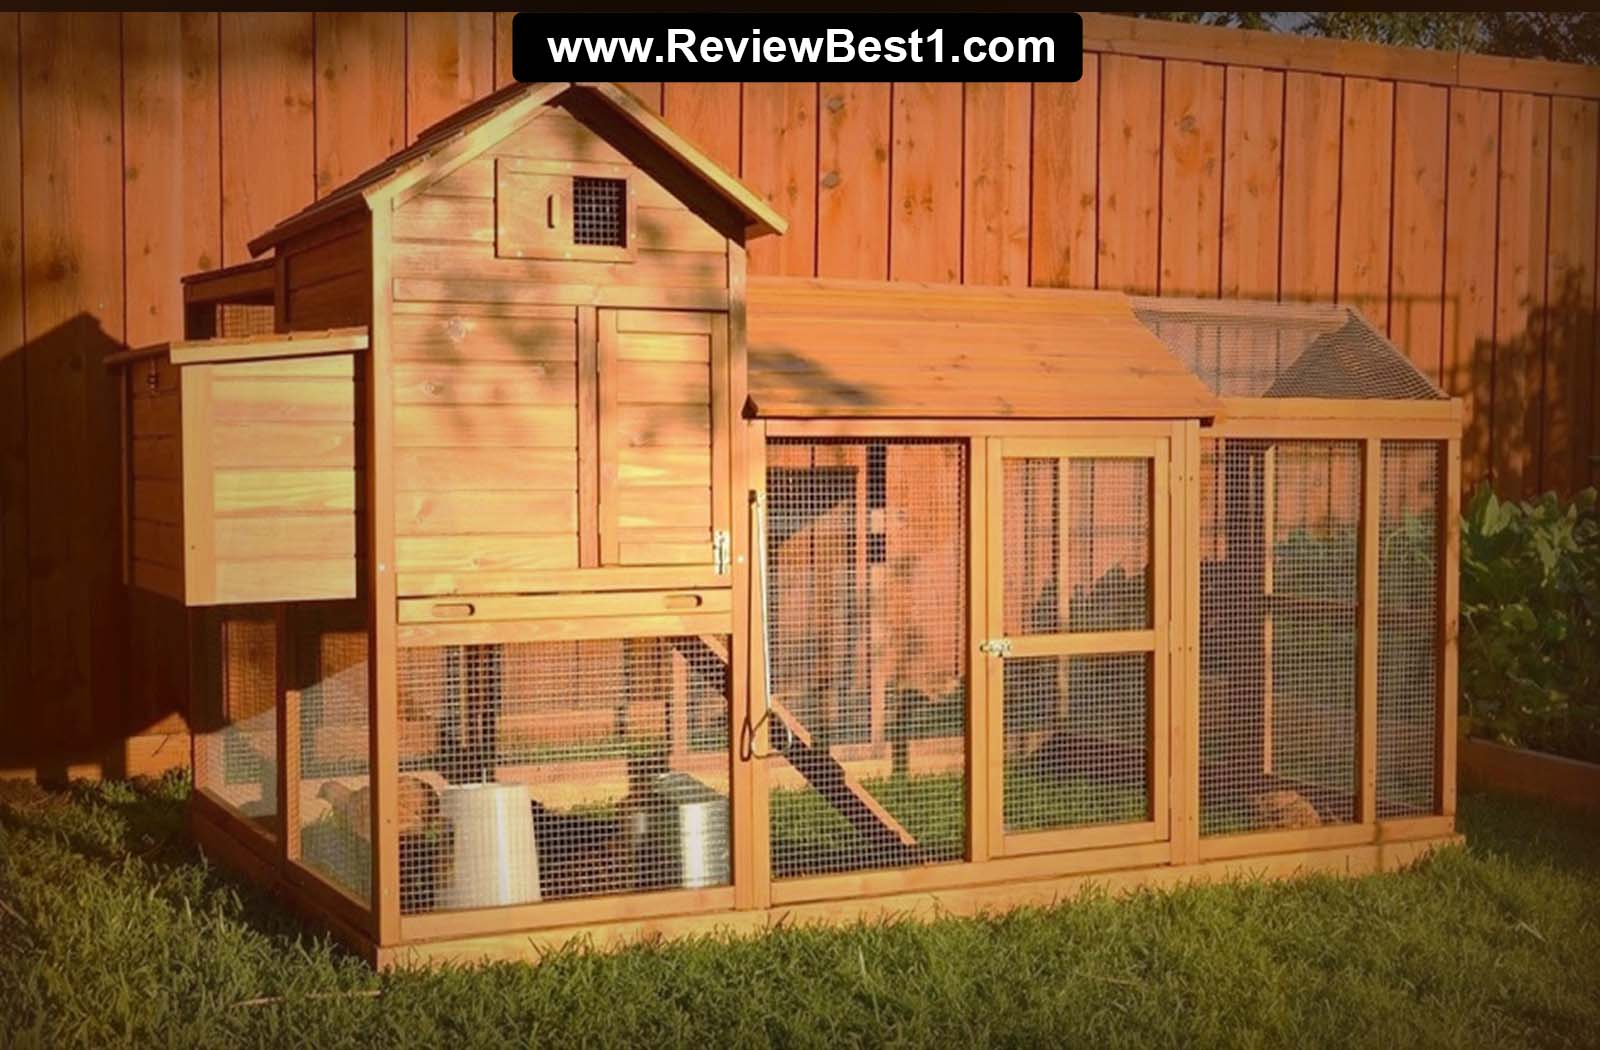 Top 10 Best Chicken Coops 2020 Review Review Best 1